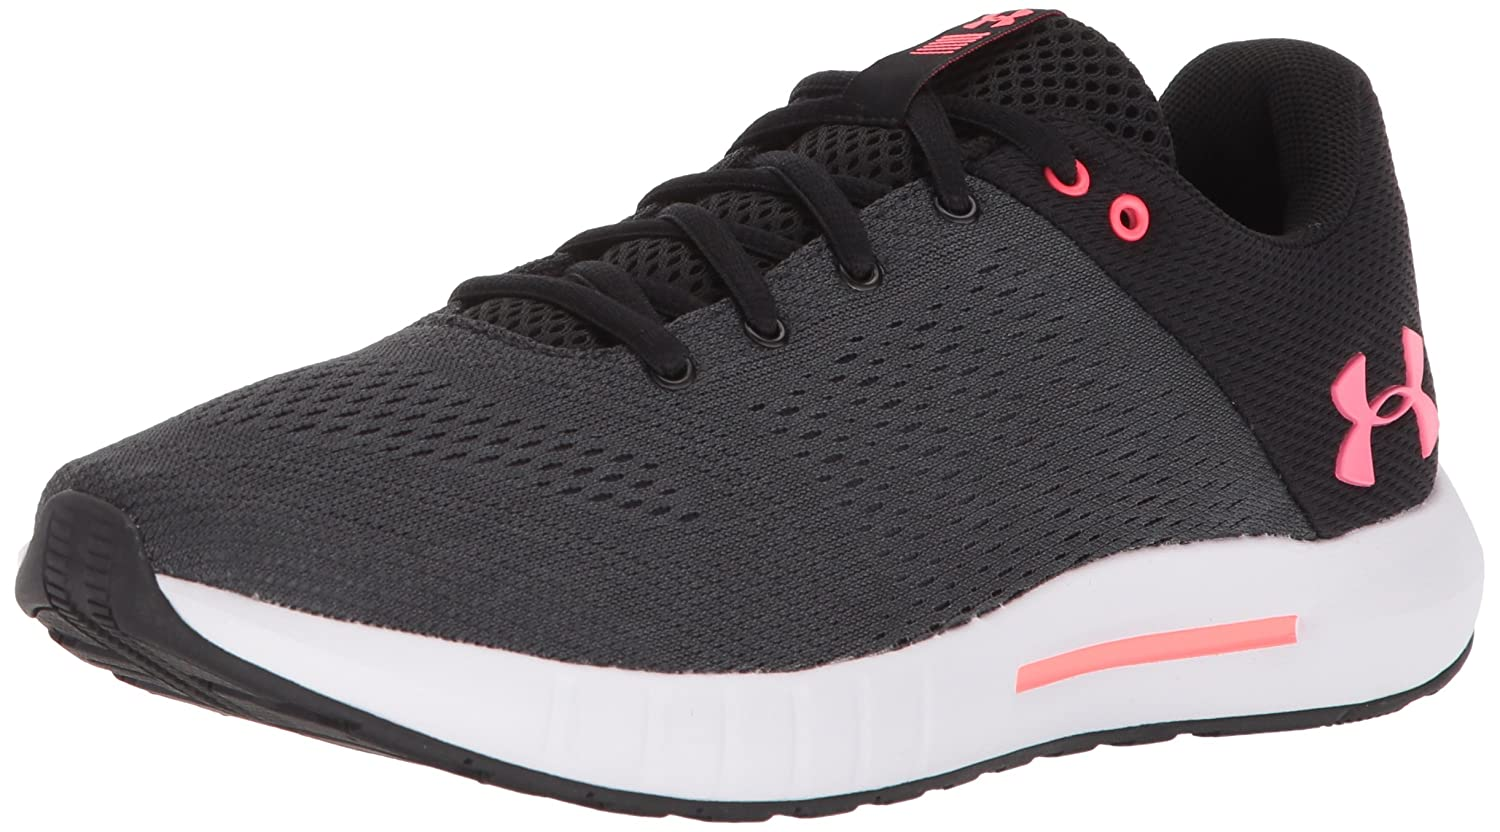 Under Armour Women's Micro G Pursuit Sneaker B071HMT42B 9.5 M US|Black (001)/Anthracite